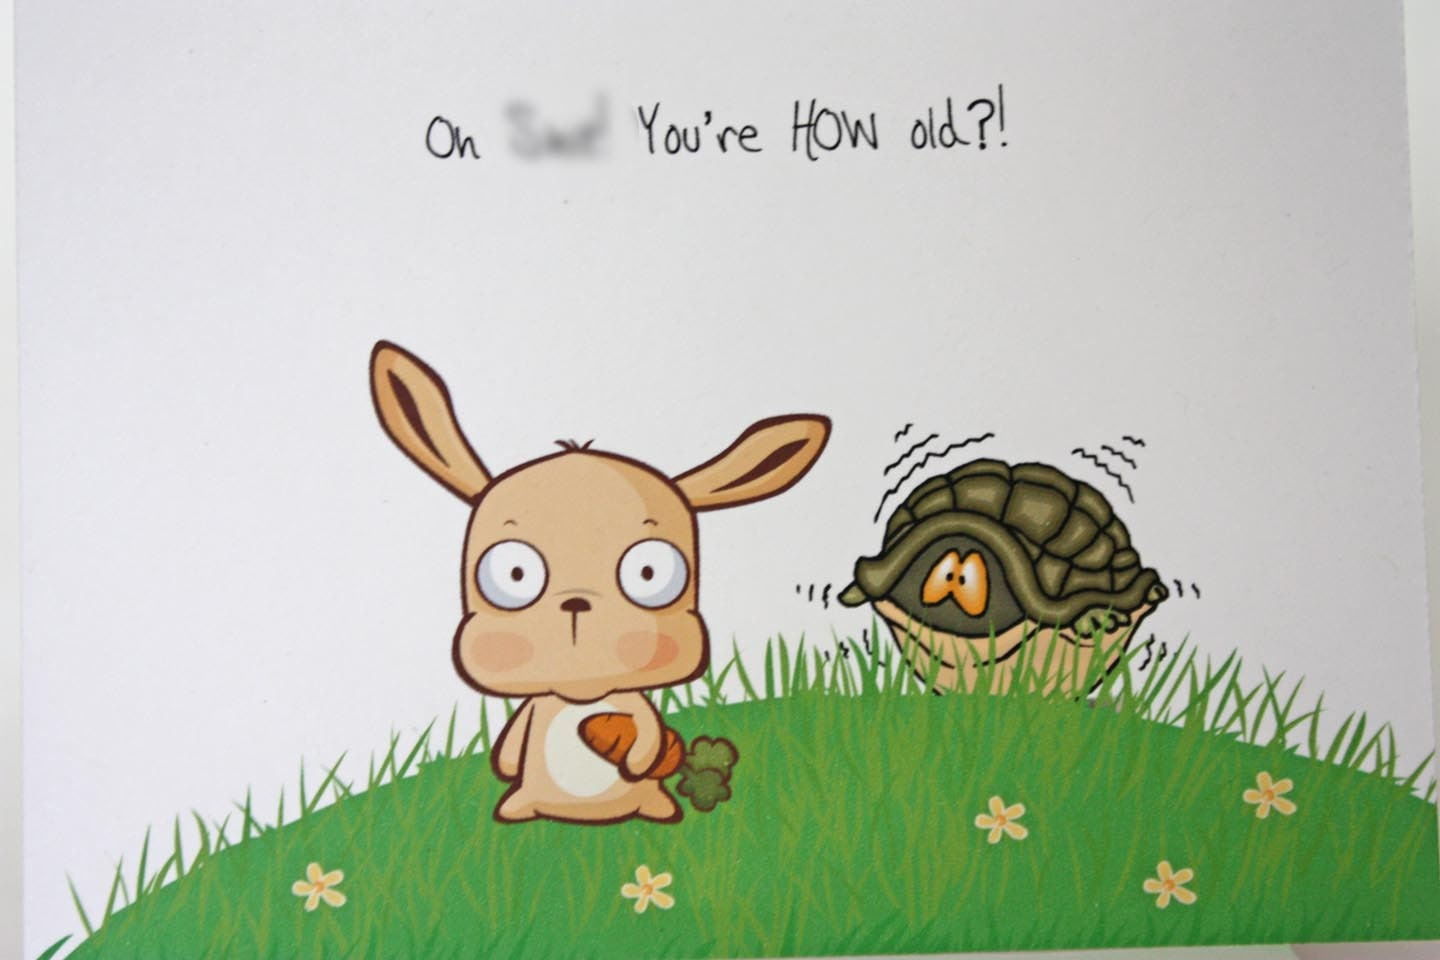 Inappropriate birthday card mature oh hit youre how old inappropriate birthday card mature oh hit youre how old snarky humorous masculine birthday card rabbit turtle made on recycle paper bookmarktalkfo Choice Image